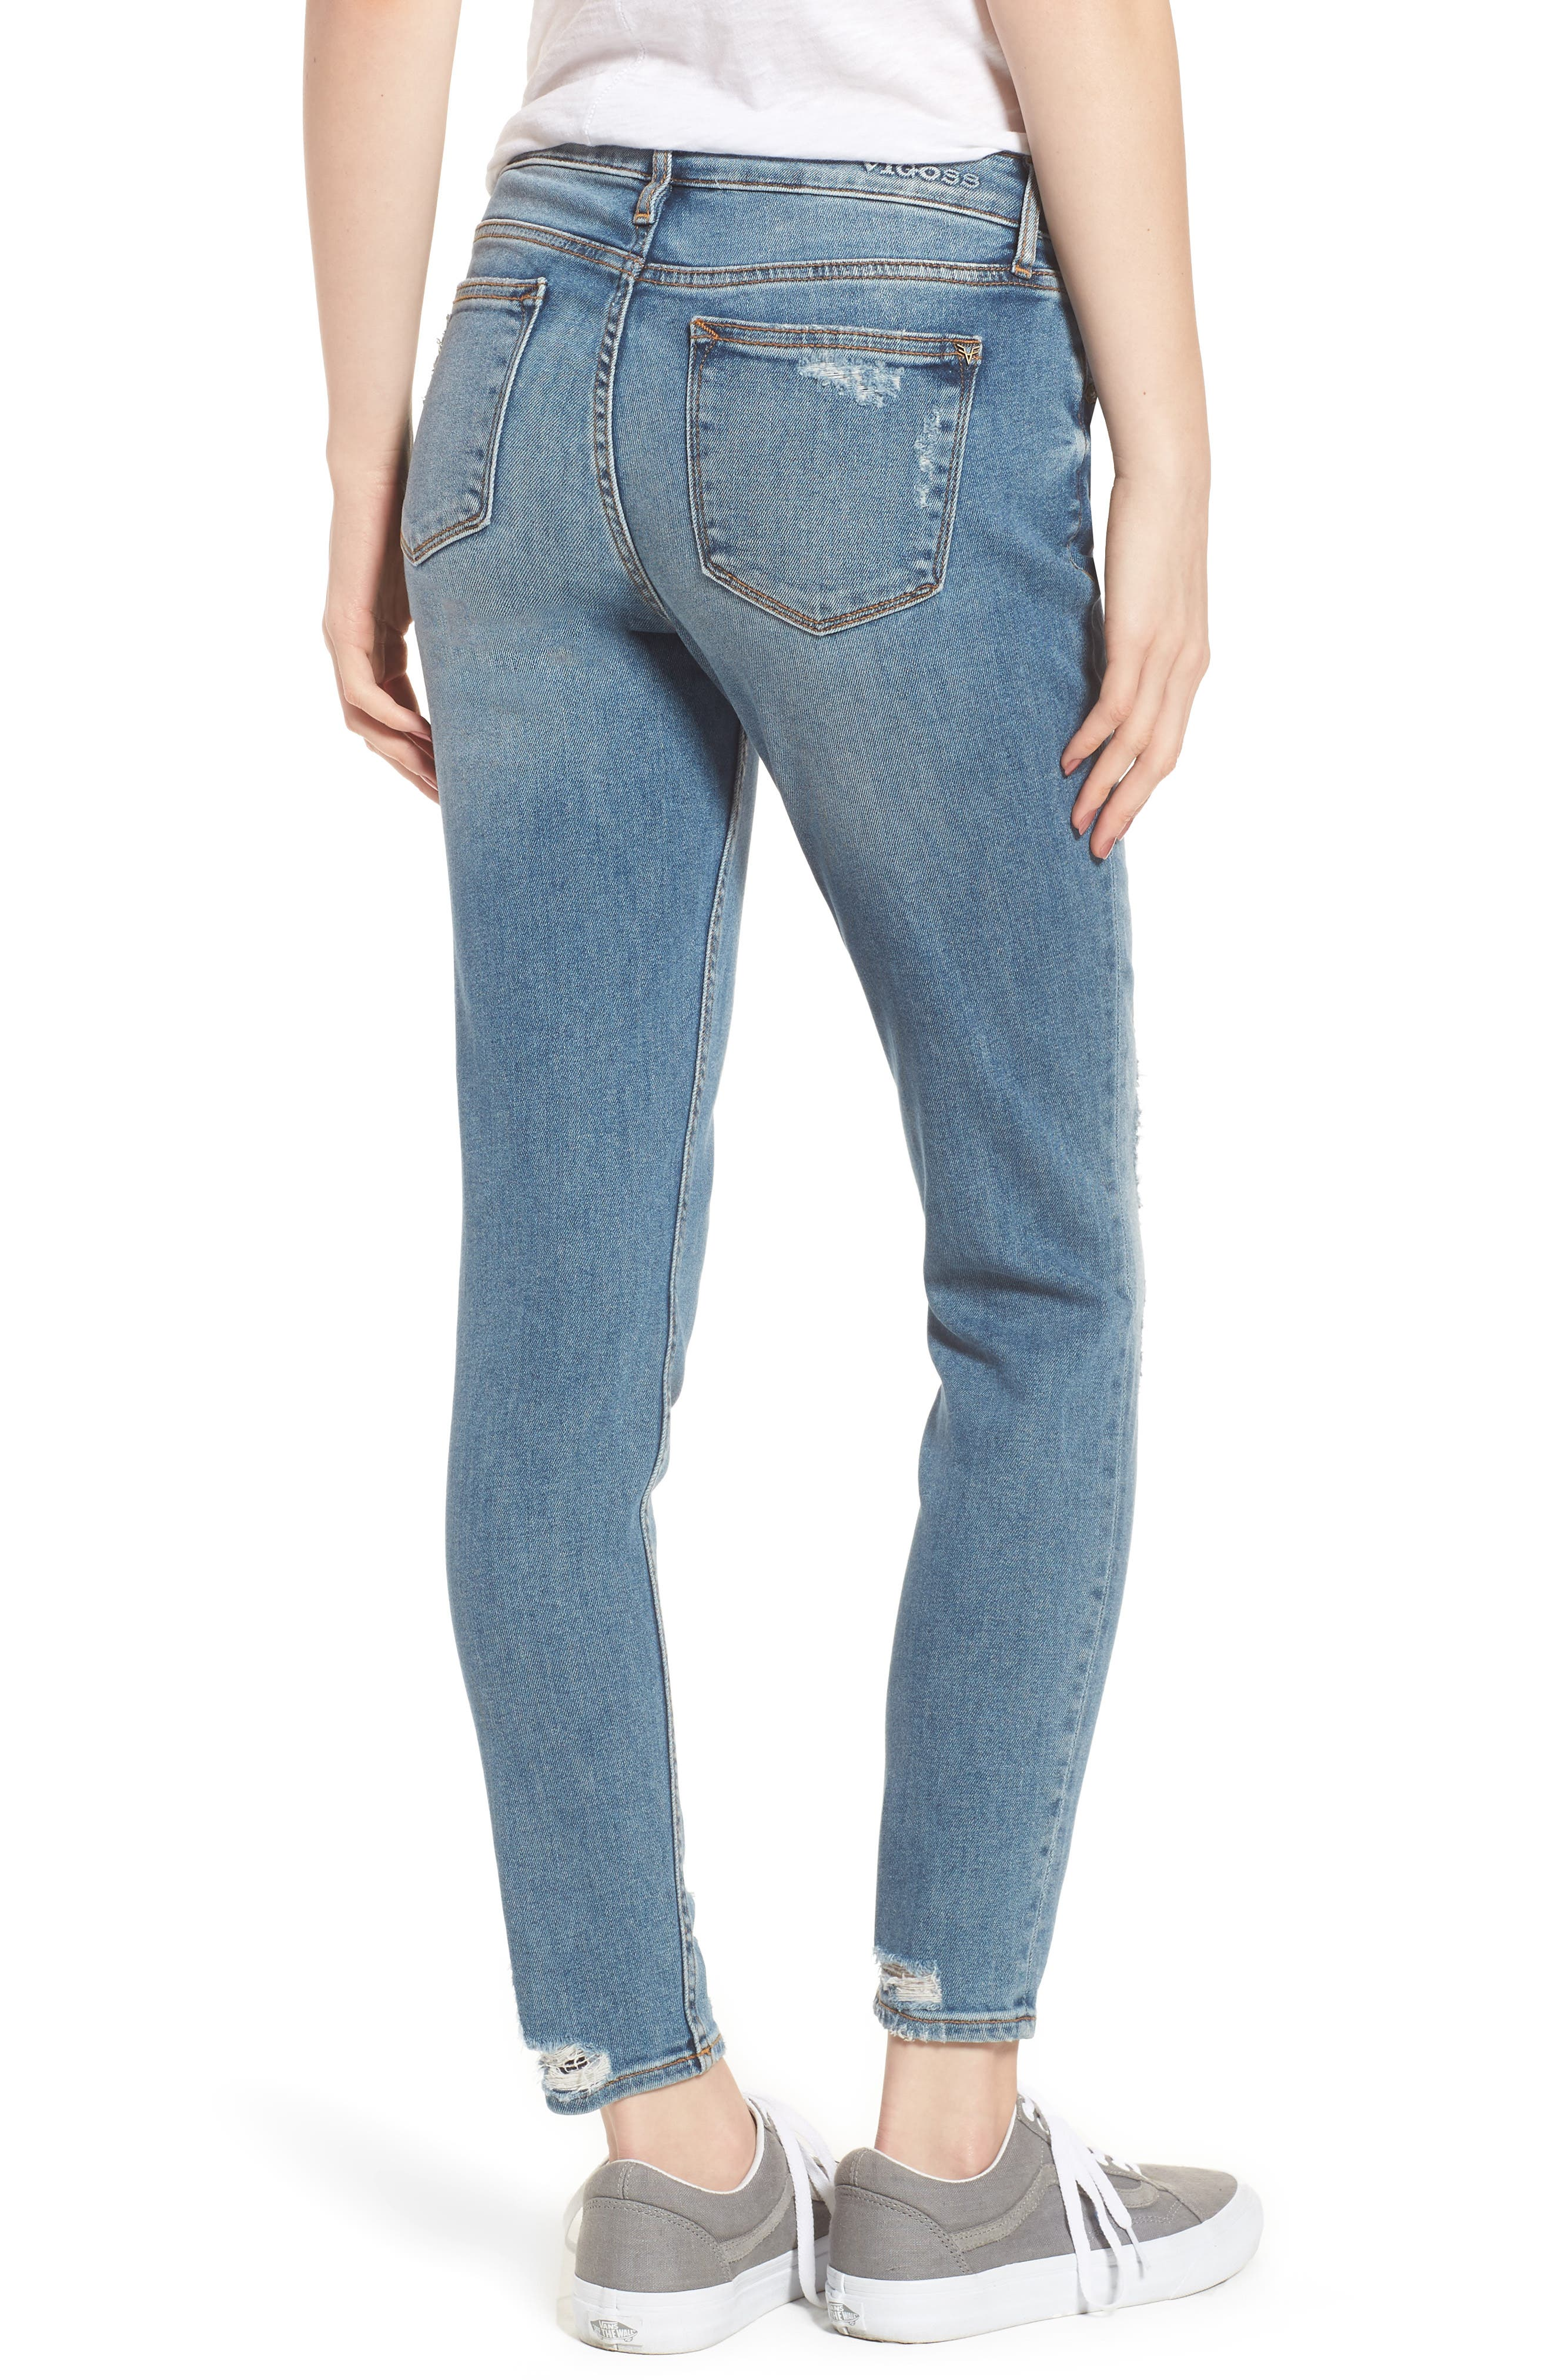 Jagger Decon Distressed Skinny Jeans,                             Alternate thumbnail 2, color,                             426